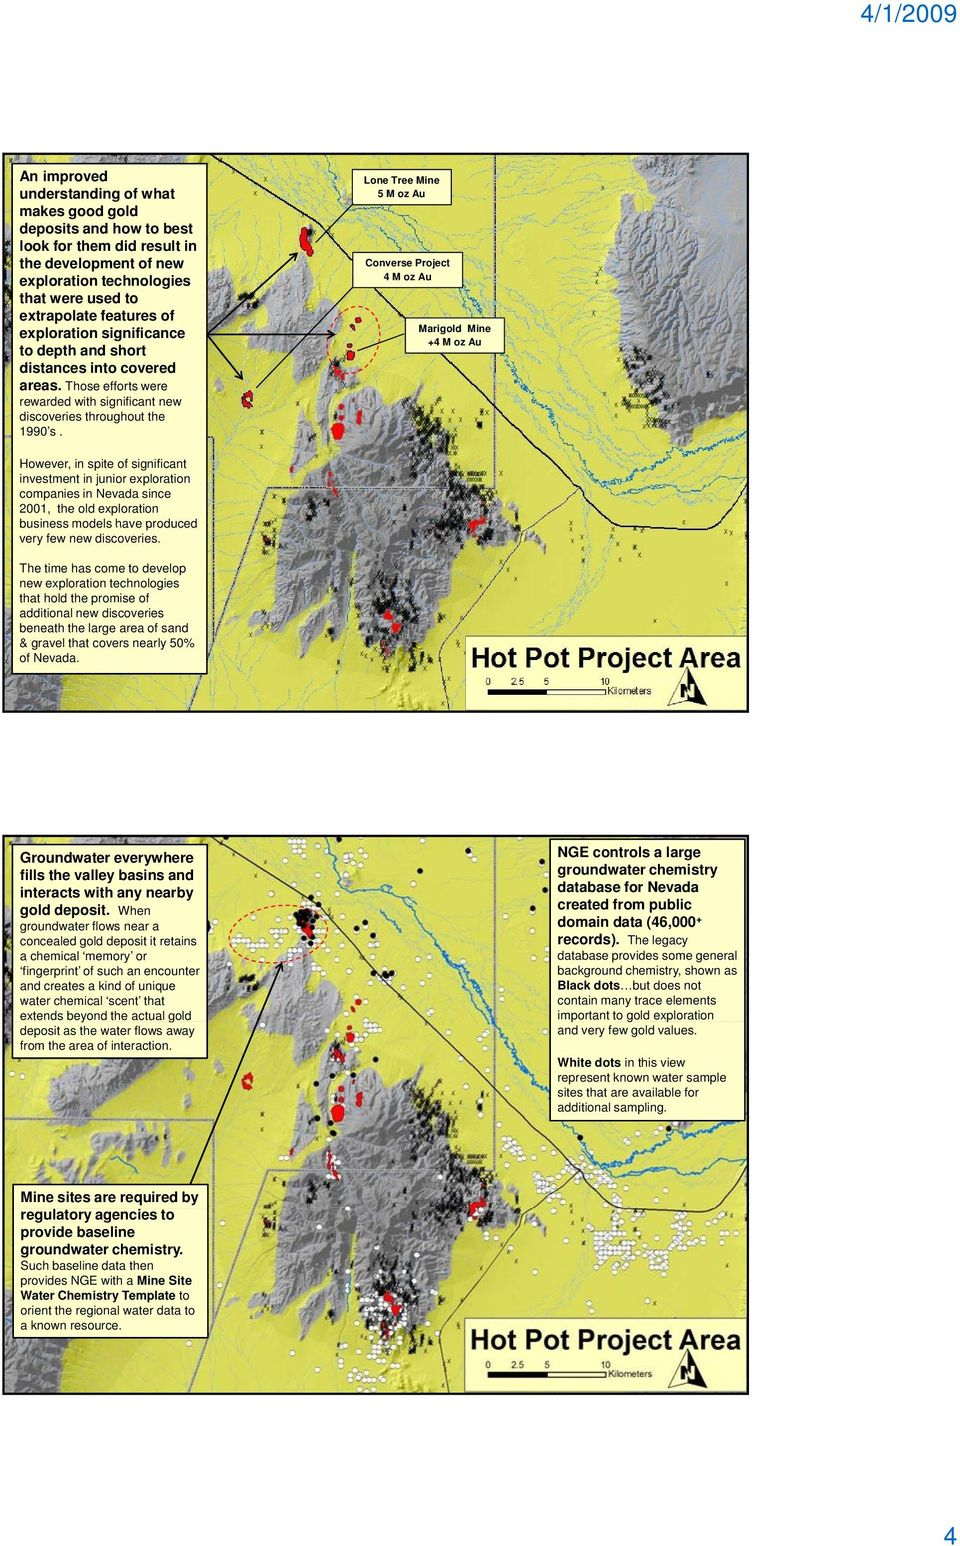 Lone Tree Mine 5M oz Au Converse Project 4 M oz Au Marigold Mine +4 M oz Au However, in spite of significant investment in junior exploration companies in Nevada since 2001, the old exploration